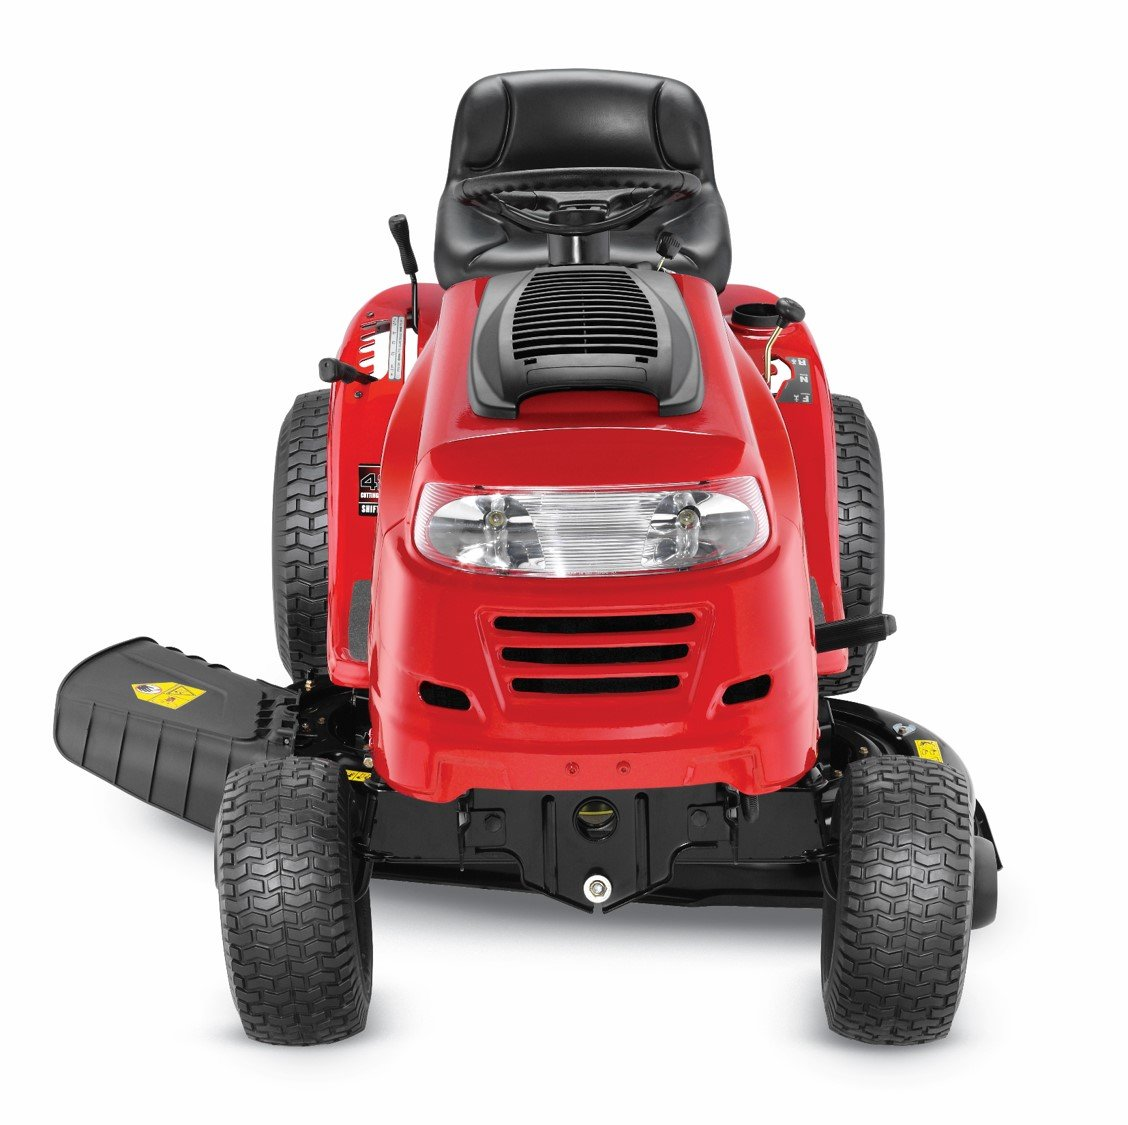 Riding Lawn Mower Won T Start - Amazon com yard machines 420cc 42 inch riding lawn tractor garden outdoor